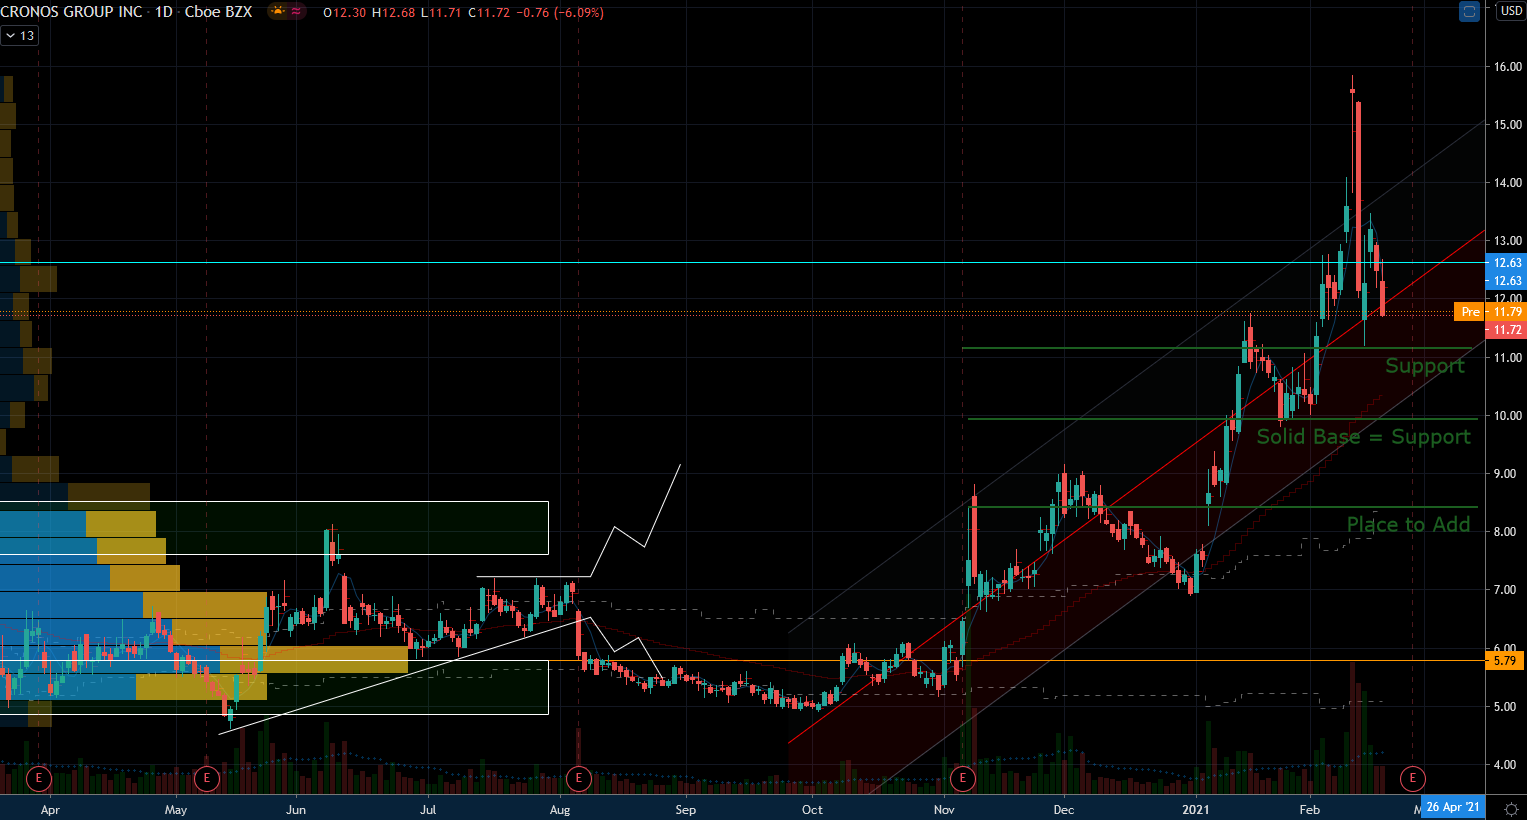 Cronos (CRON) Stock Chart Showing Support Zones